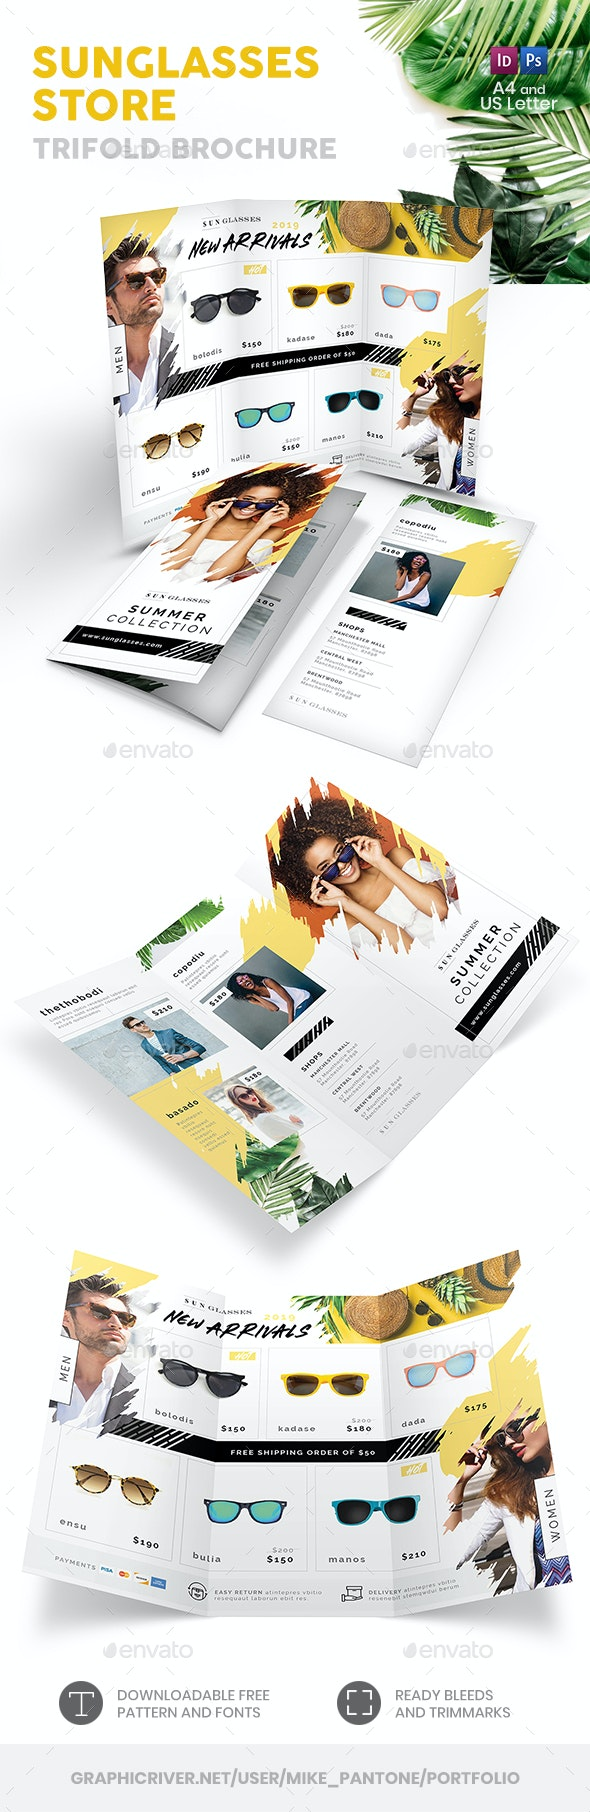 Sunglasses Store Trifold Brochure - Informational Brochures